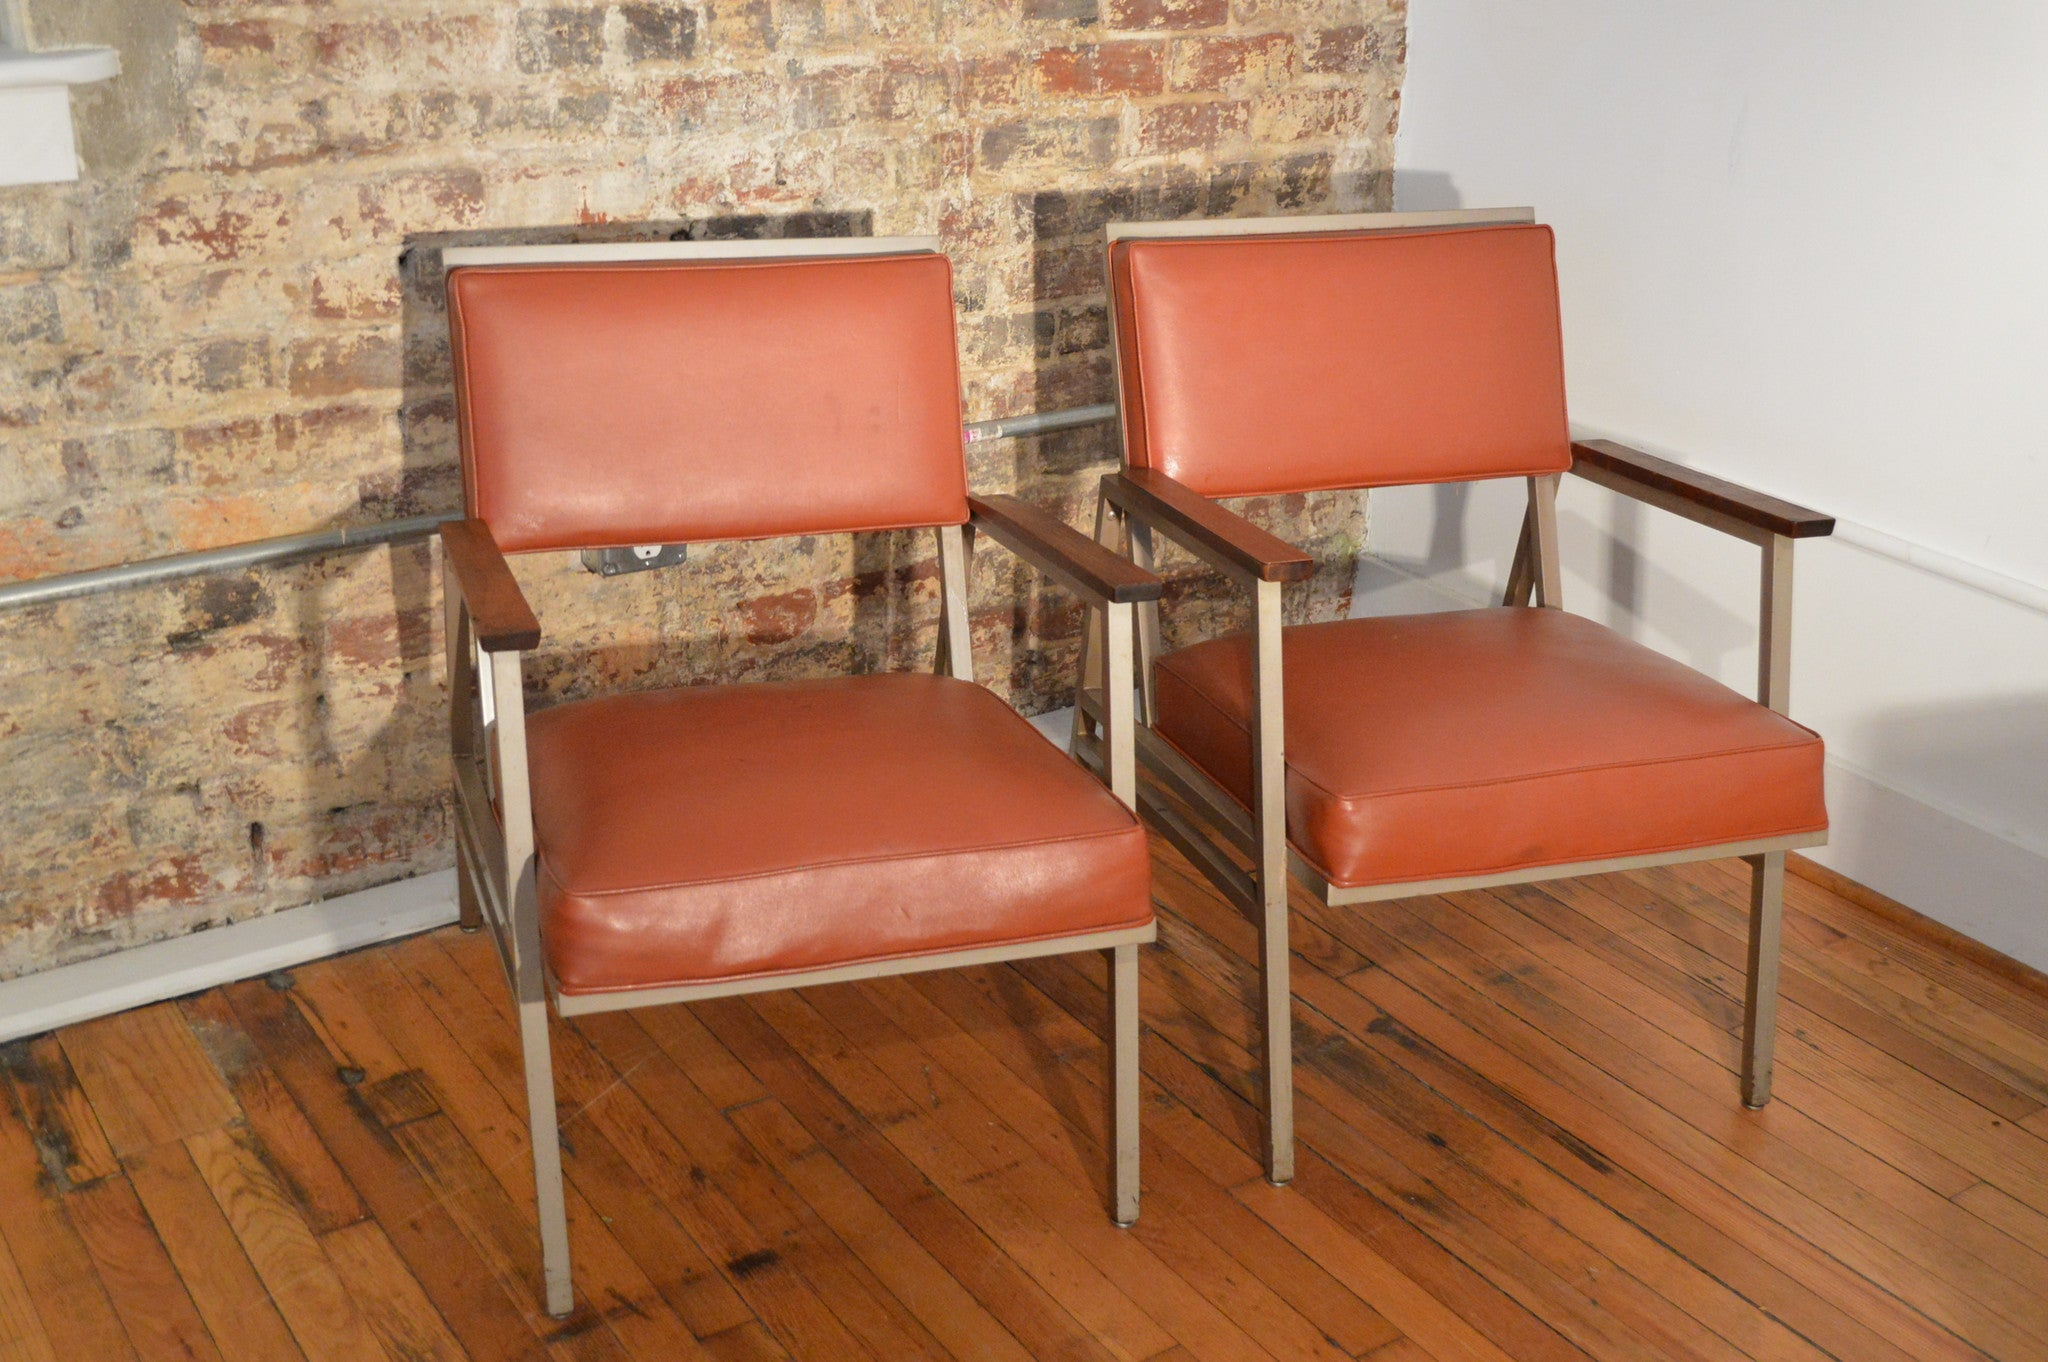 Vintage Steelcase Lounge Chair - Pair of steelcase mid century industrial arm chairs